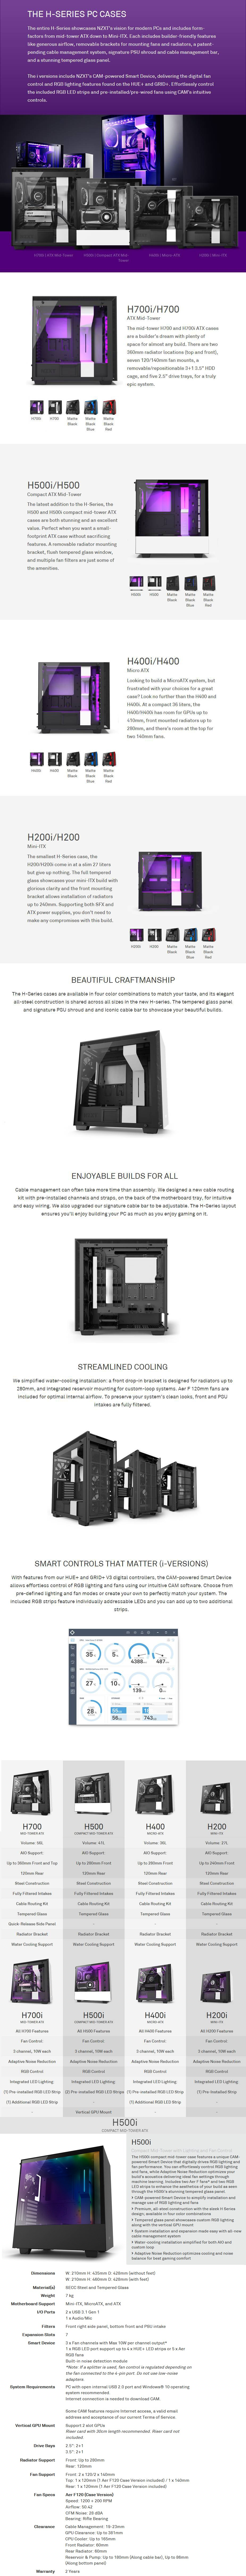 NZXT H500i Smart RGB Tempered Glass Mid-Tower ATX Case - Matte Black - Desktop Overview 1